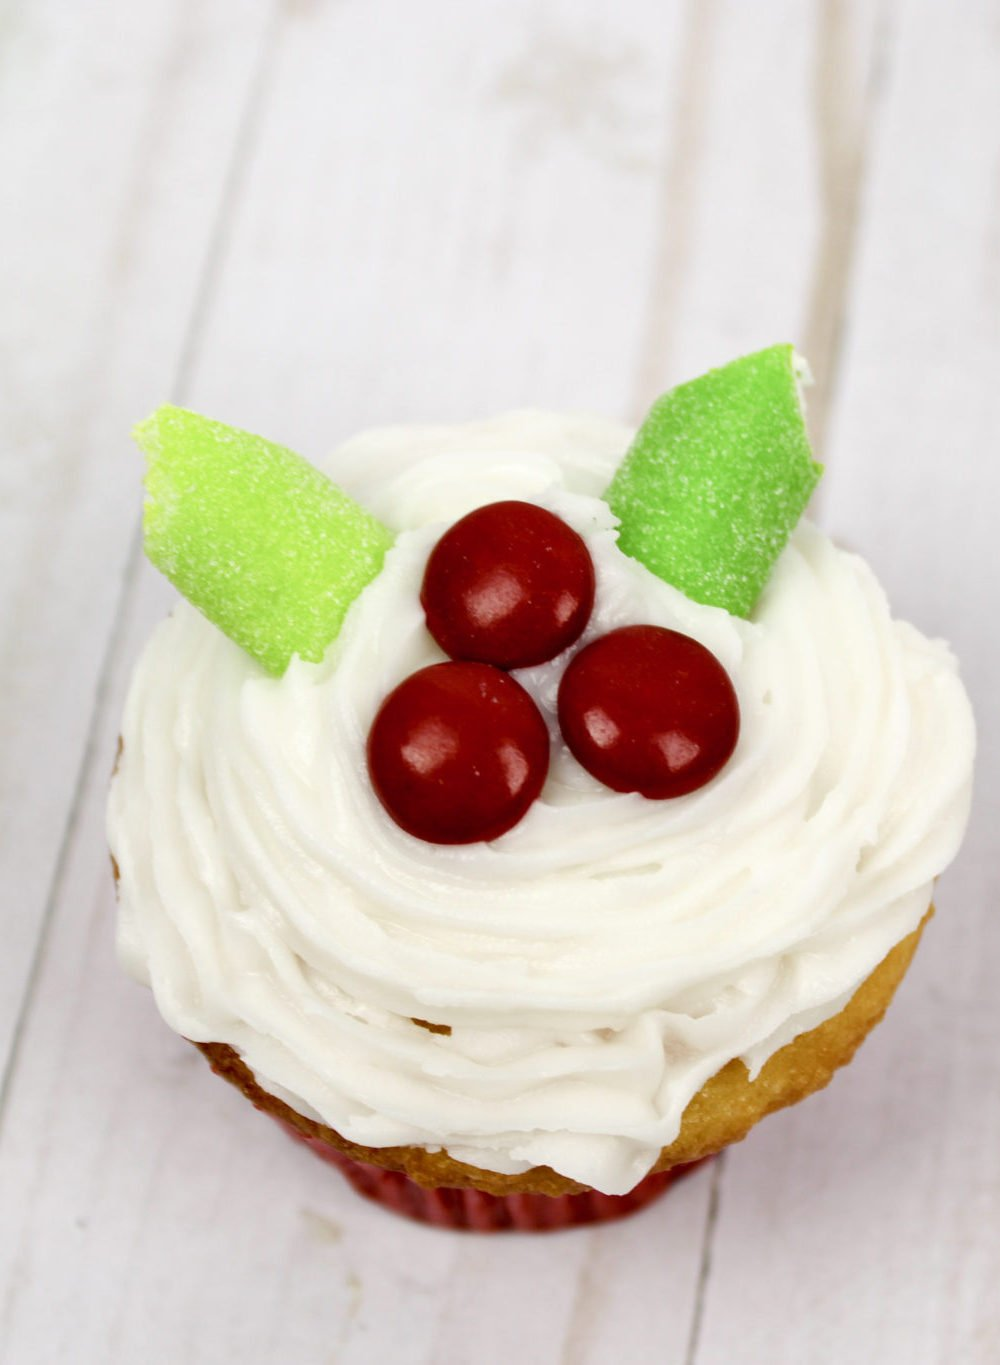 Mistletoe Cupcakes Recipe Ingredients